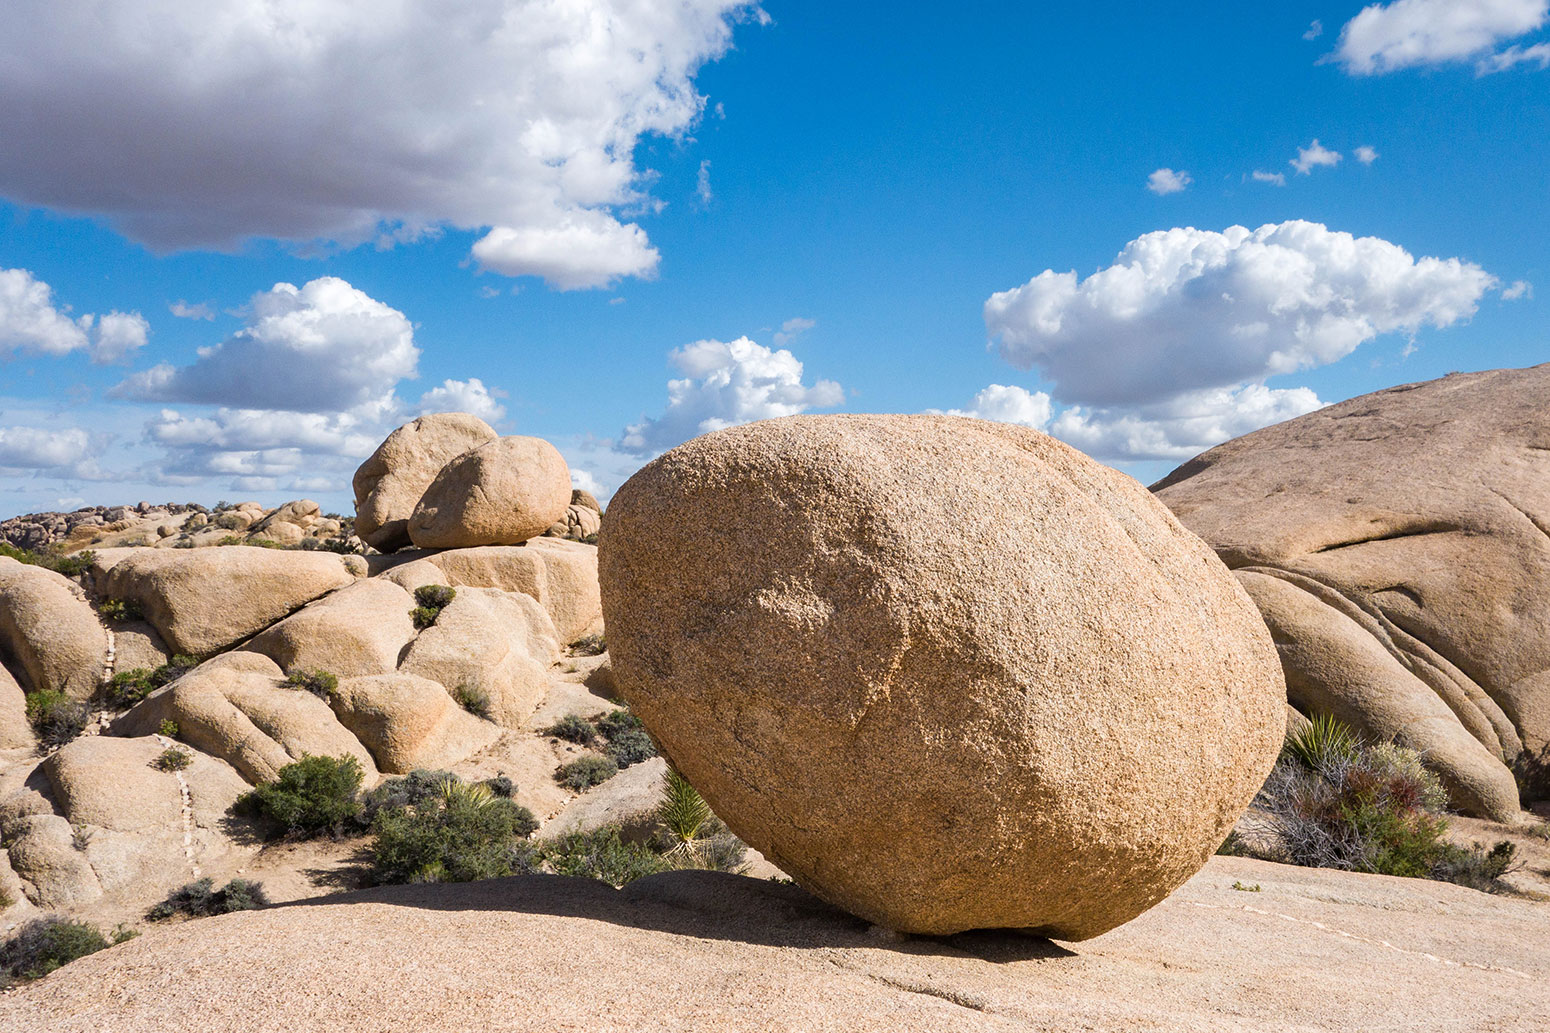 Joshua Tree - Jumbo Rocks